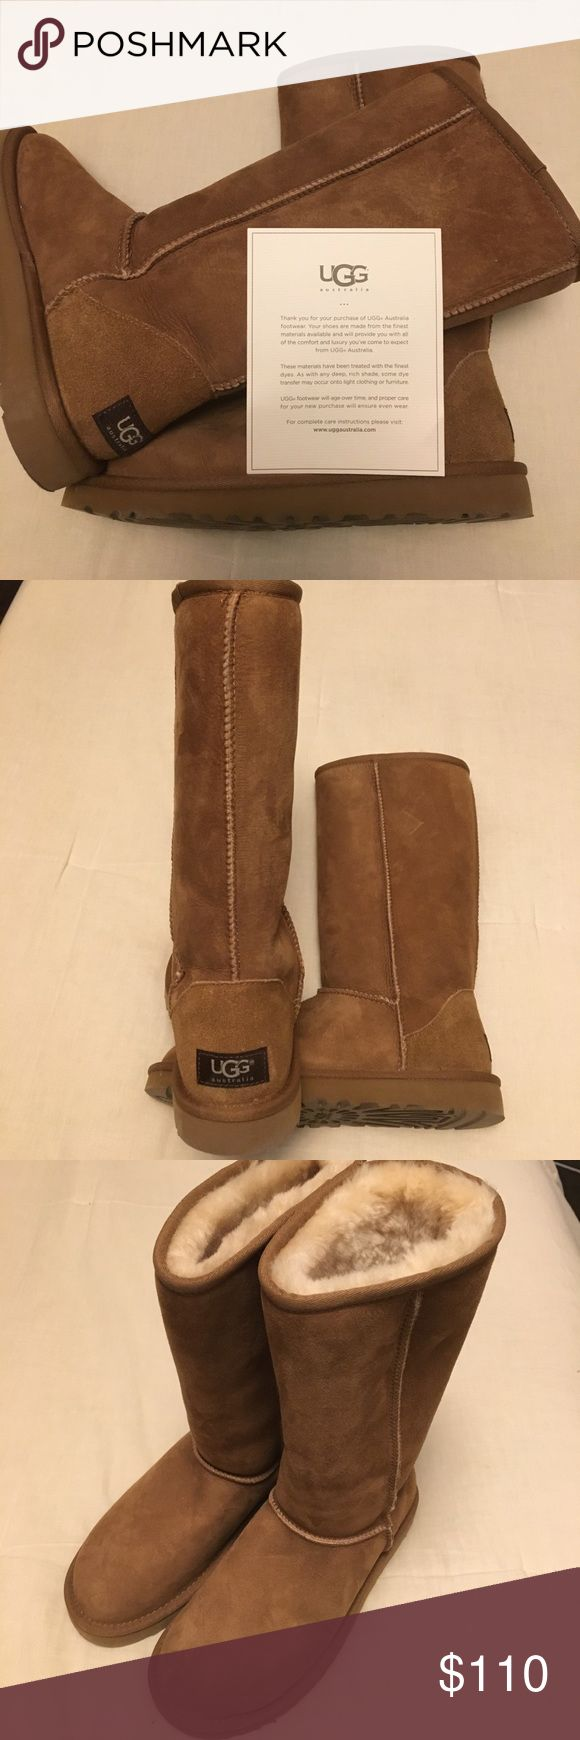 Ugg Classic Tall - Chesnut Size 6, great shape, no stains, worn couple times see picture of bottom soles.  In original box. UGG Shoes Winter & Rain Boots